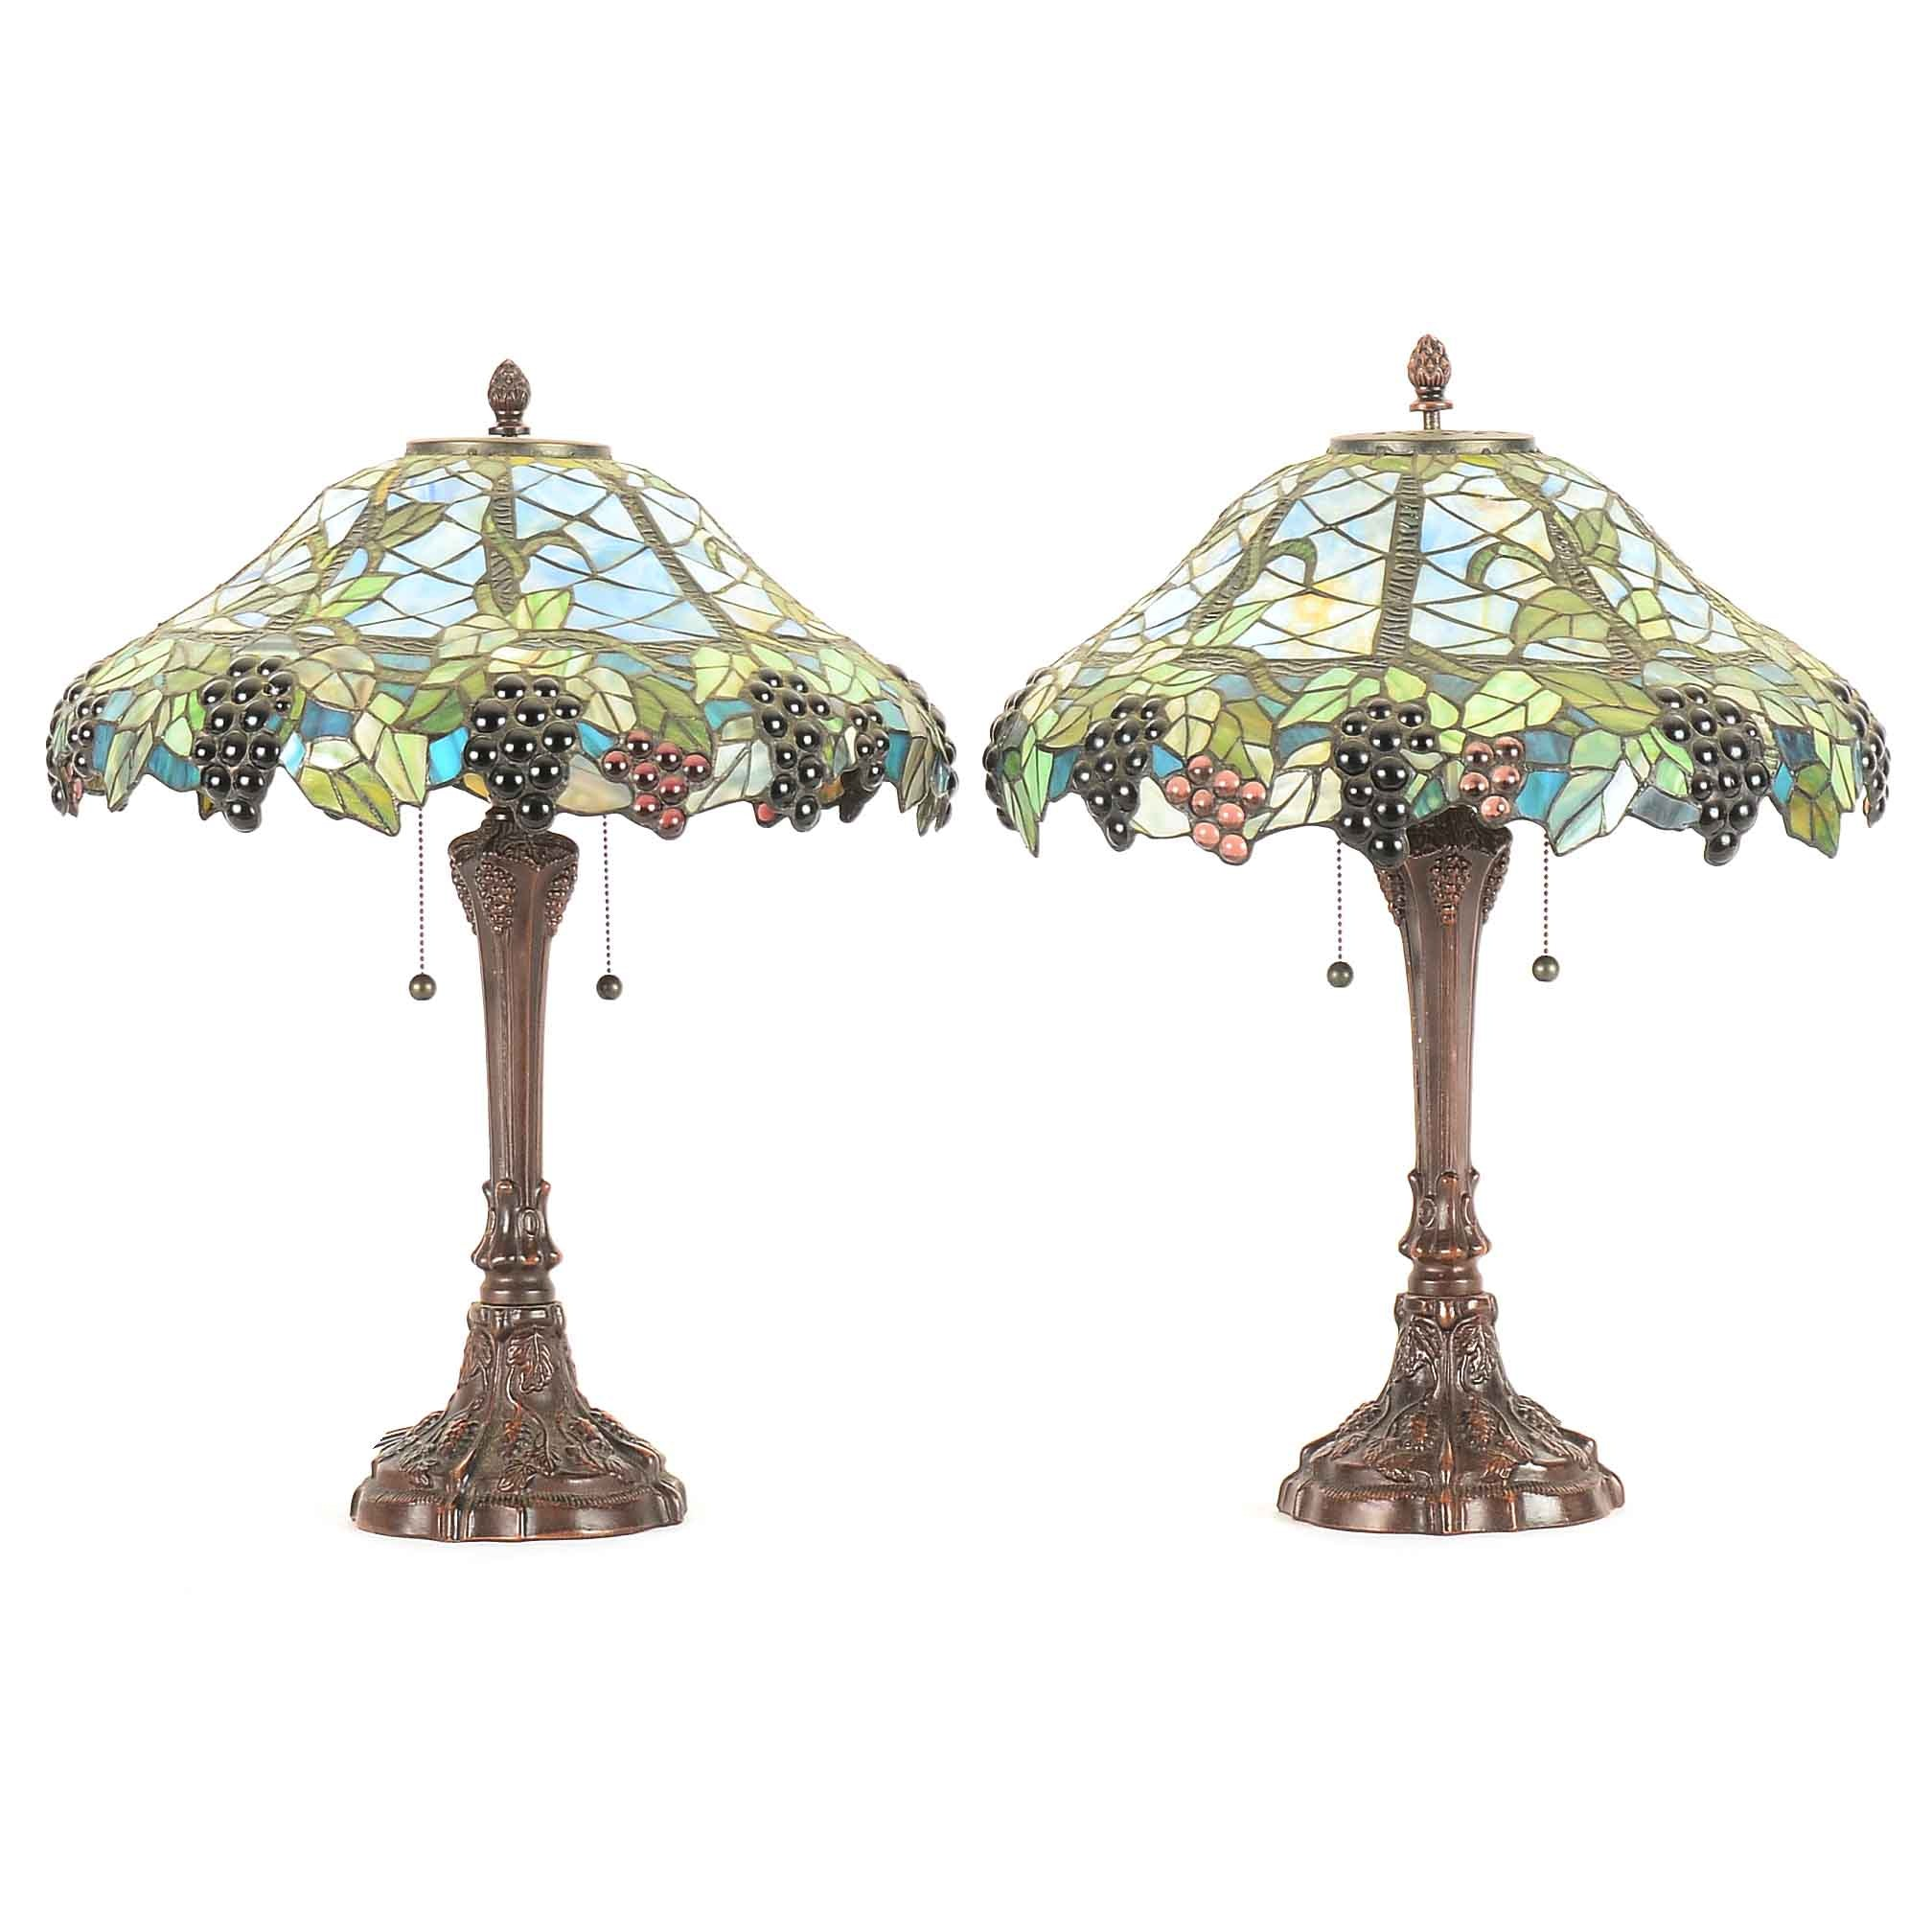 Pair of Faux Stain Glass Table Lamps